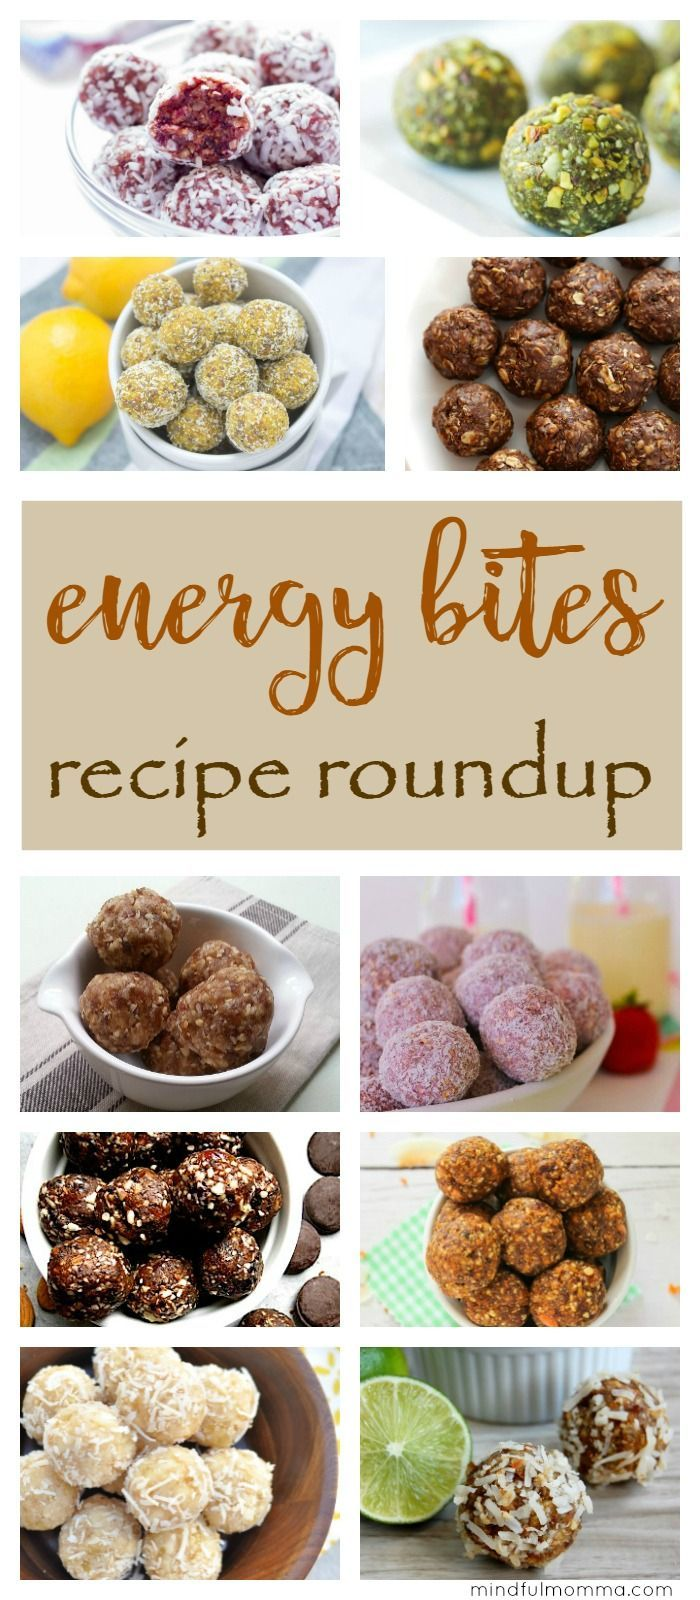 A roundup of homemade energy bites recipes in every flavor combination imaginable! Energy bites or energy ballls are an easy, healthy, kid-friendly snack, breakfast or dessert.   #healthysnack #energybites #recipe #snacks